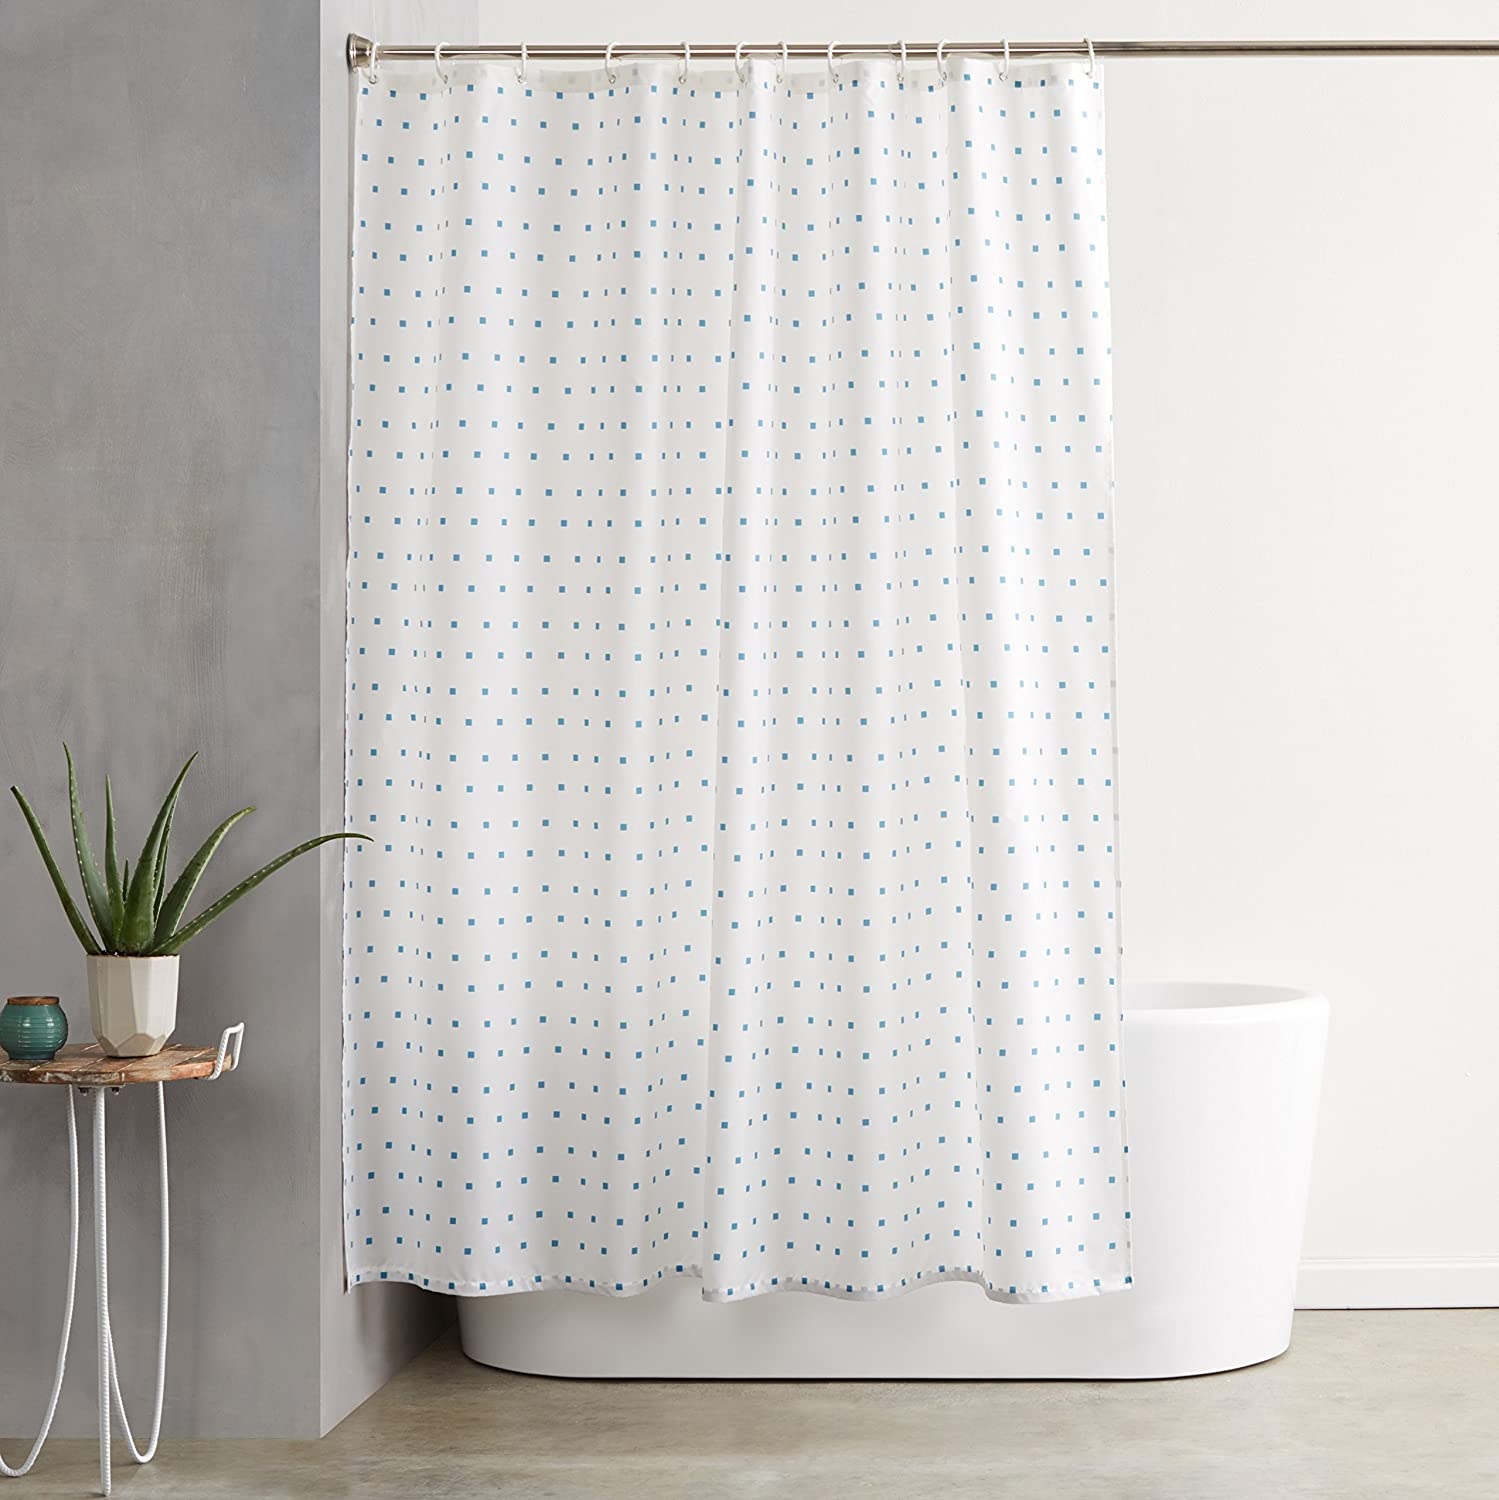 quality transparent fish clear plastic shower curtain 180